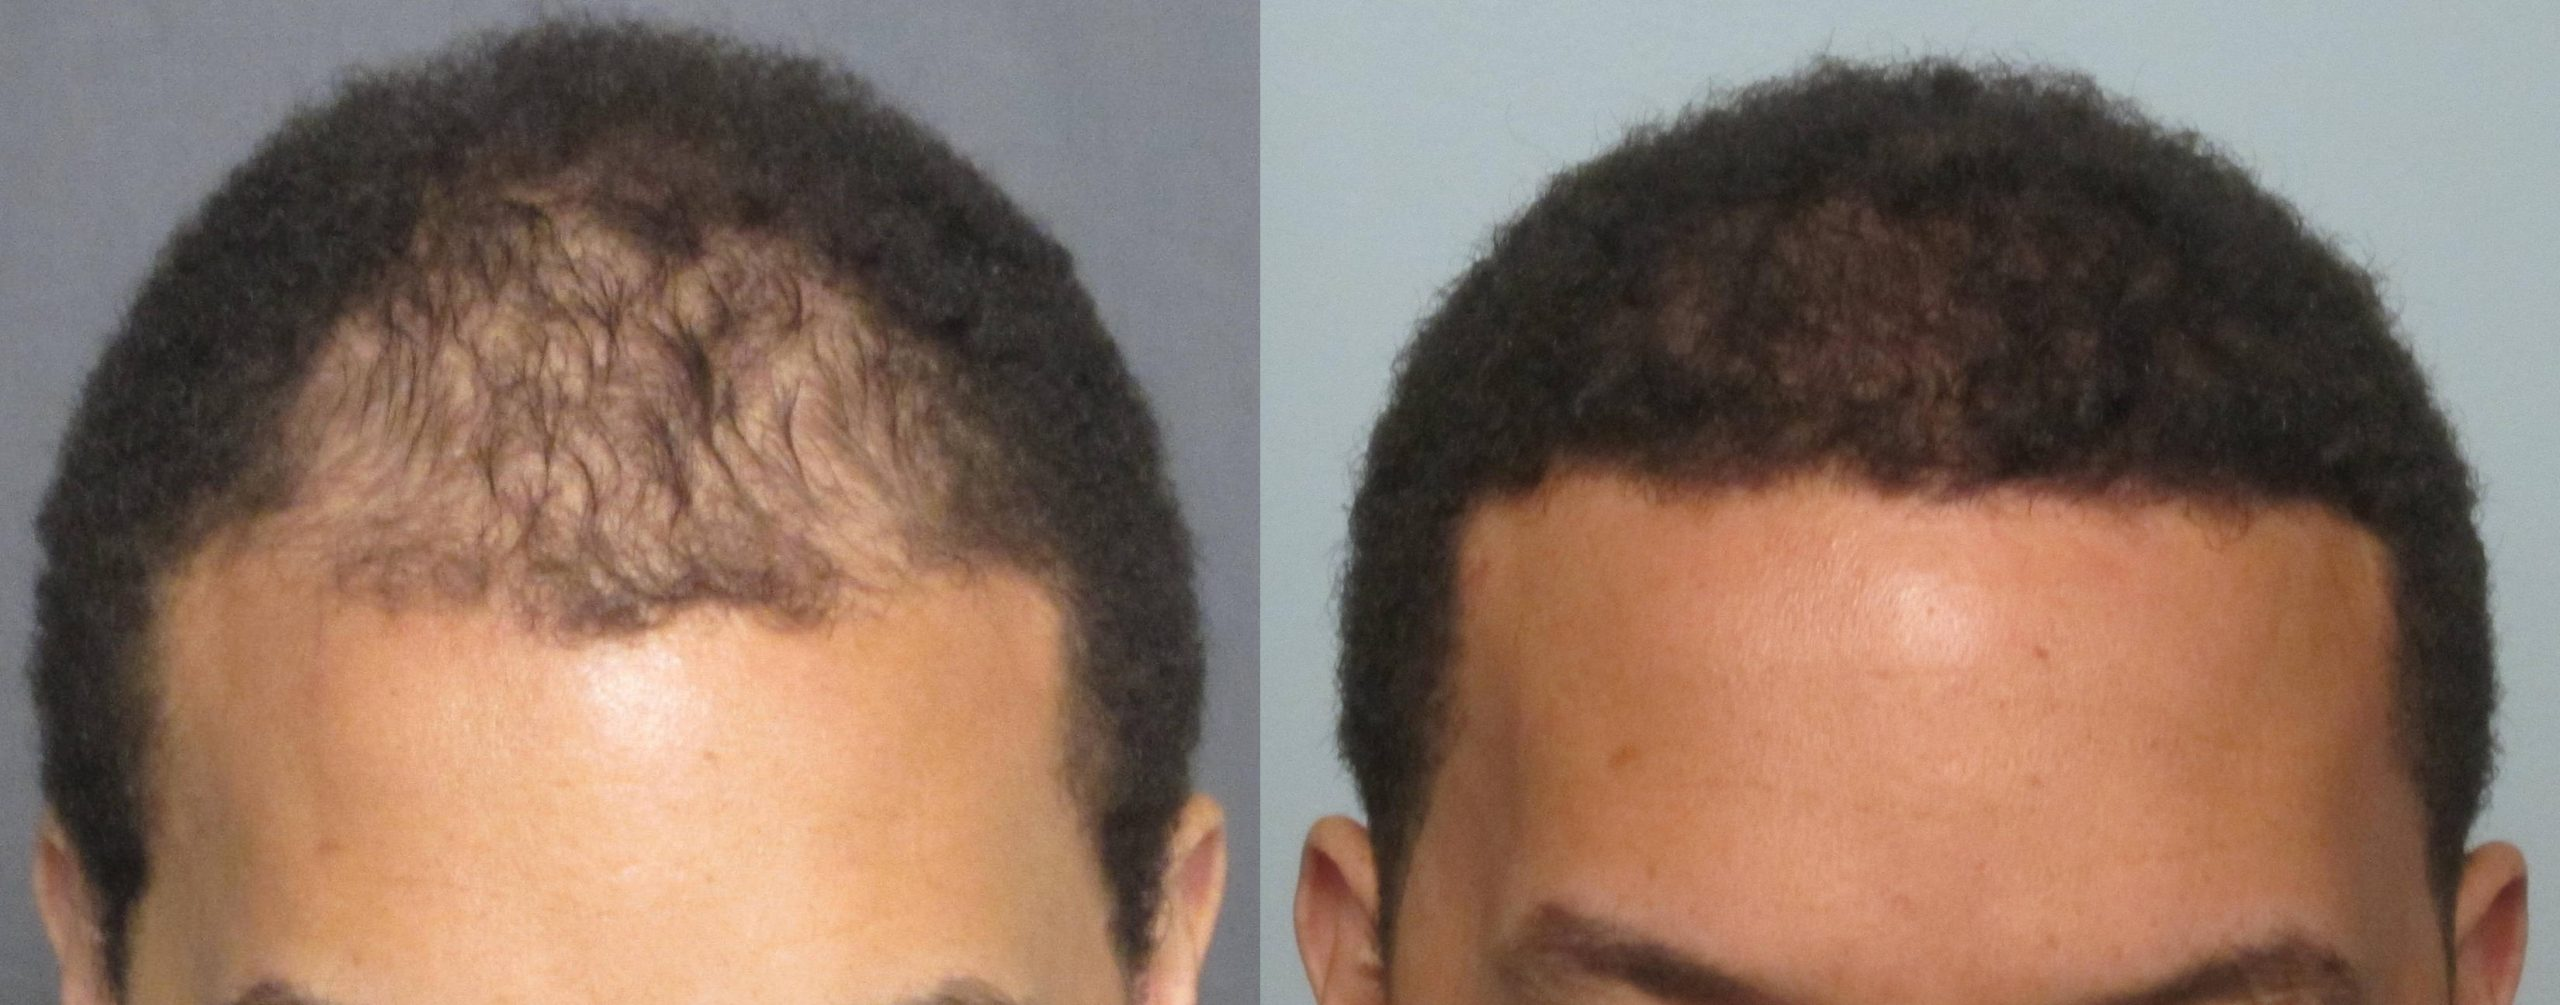 African American hair transplant of the frontal area. Dr. Behnam has the skill and the technicians to perform great job with curly hair.